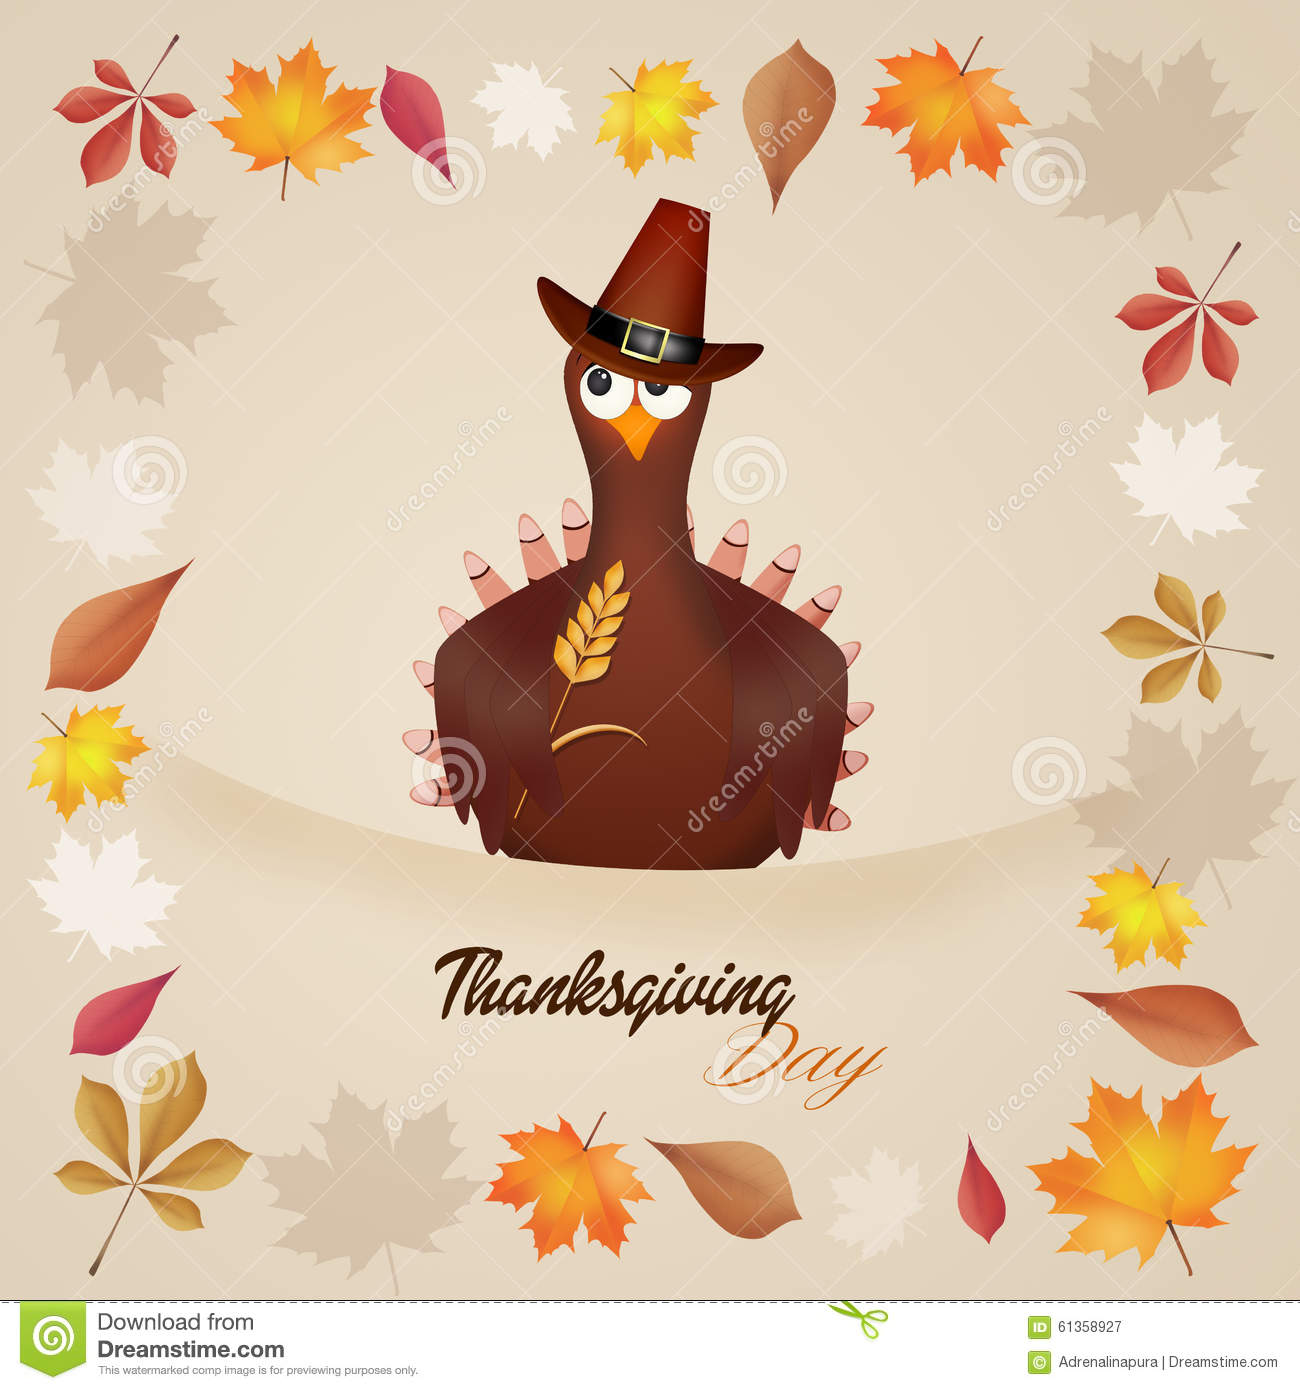 Thanksgiving Day Stock Illustration - Image: 61358927